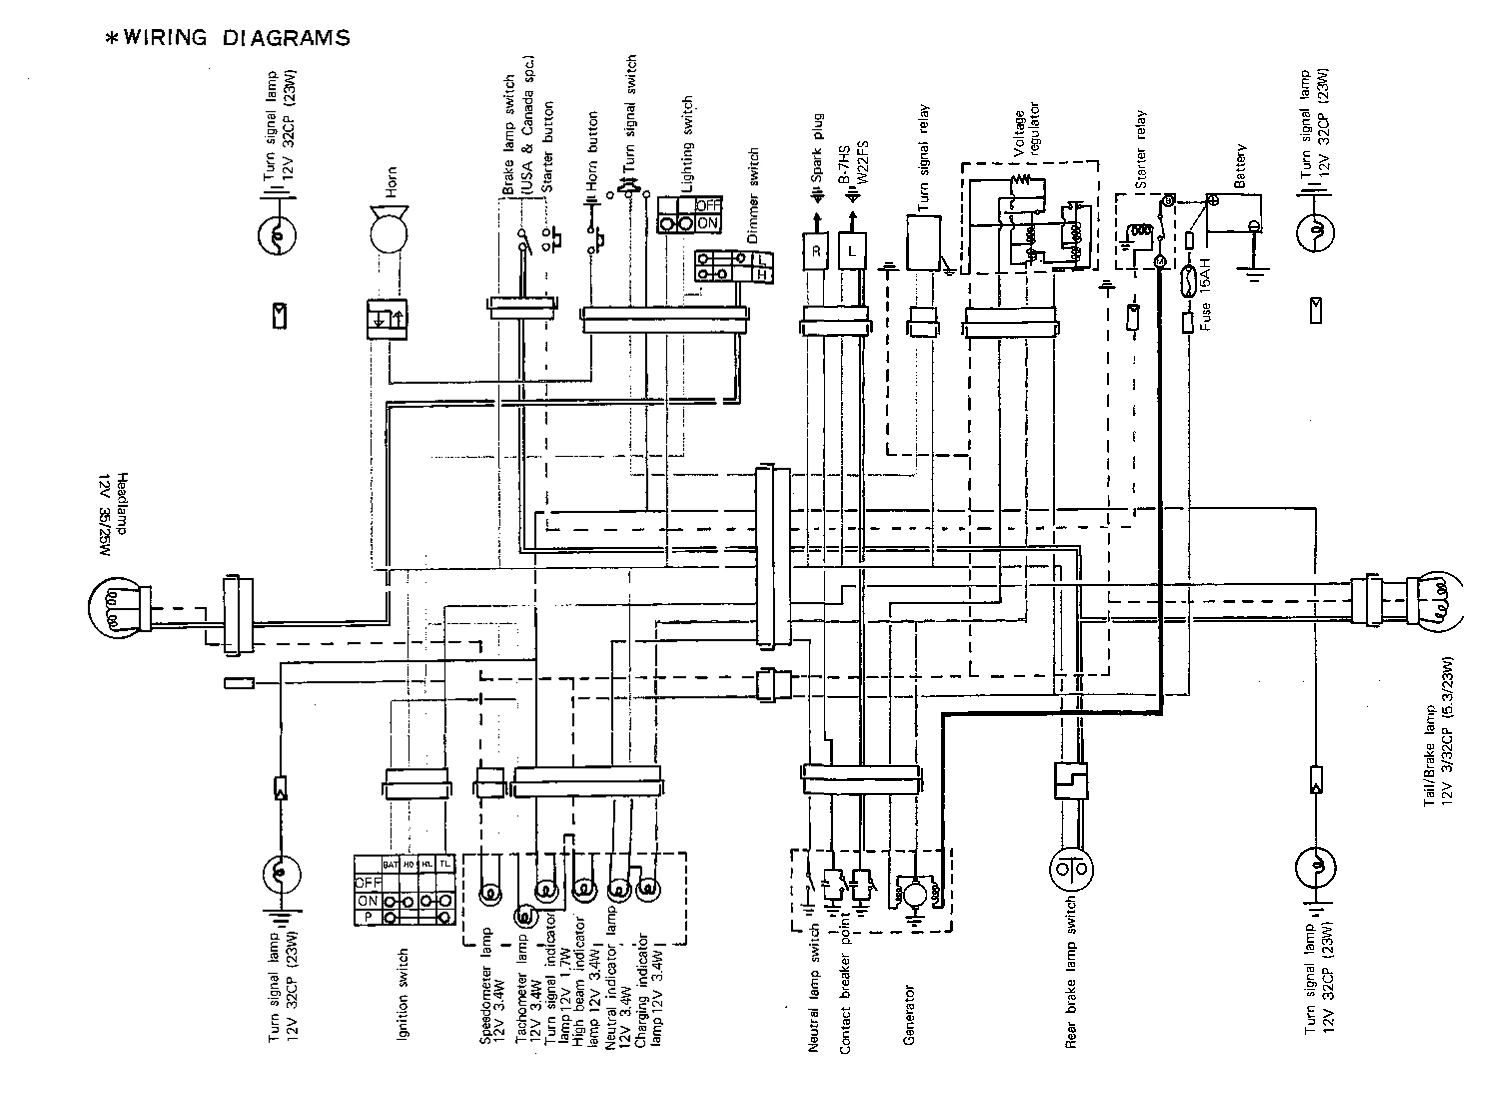 Miniature Circuit Breaker Wiring Diagram. Diagram. Auto